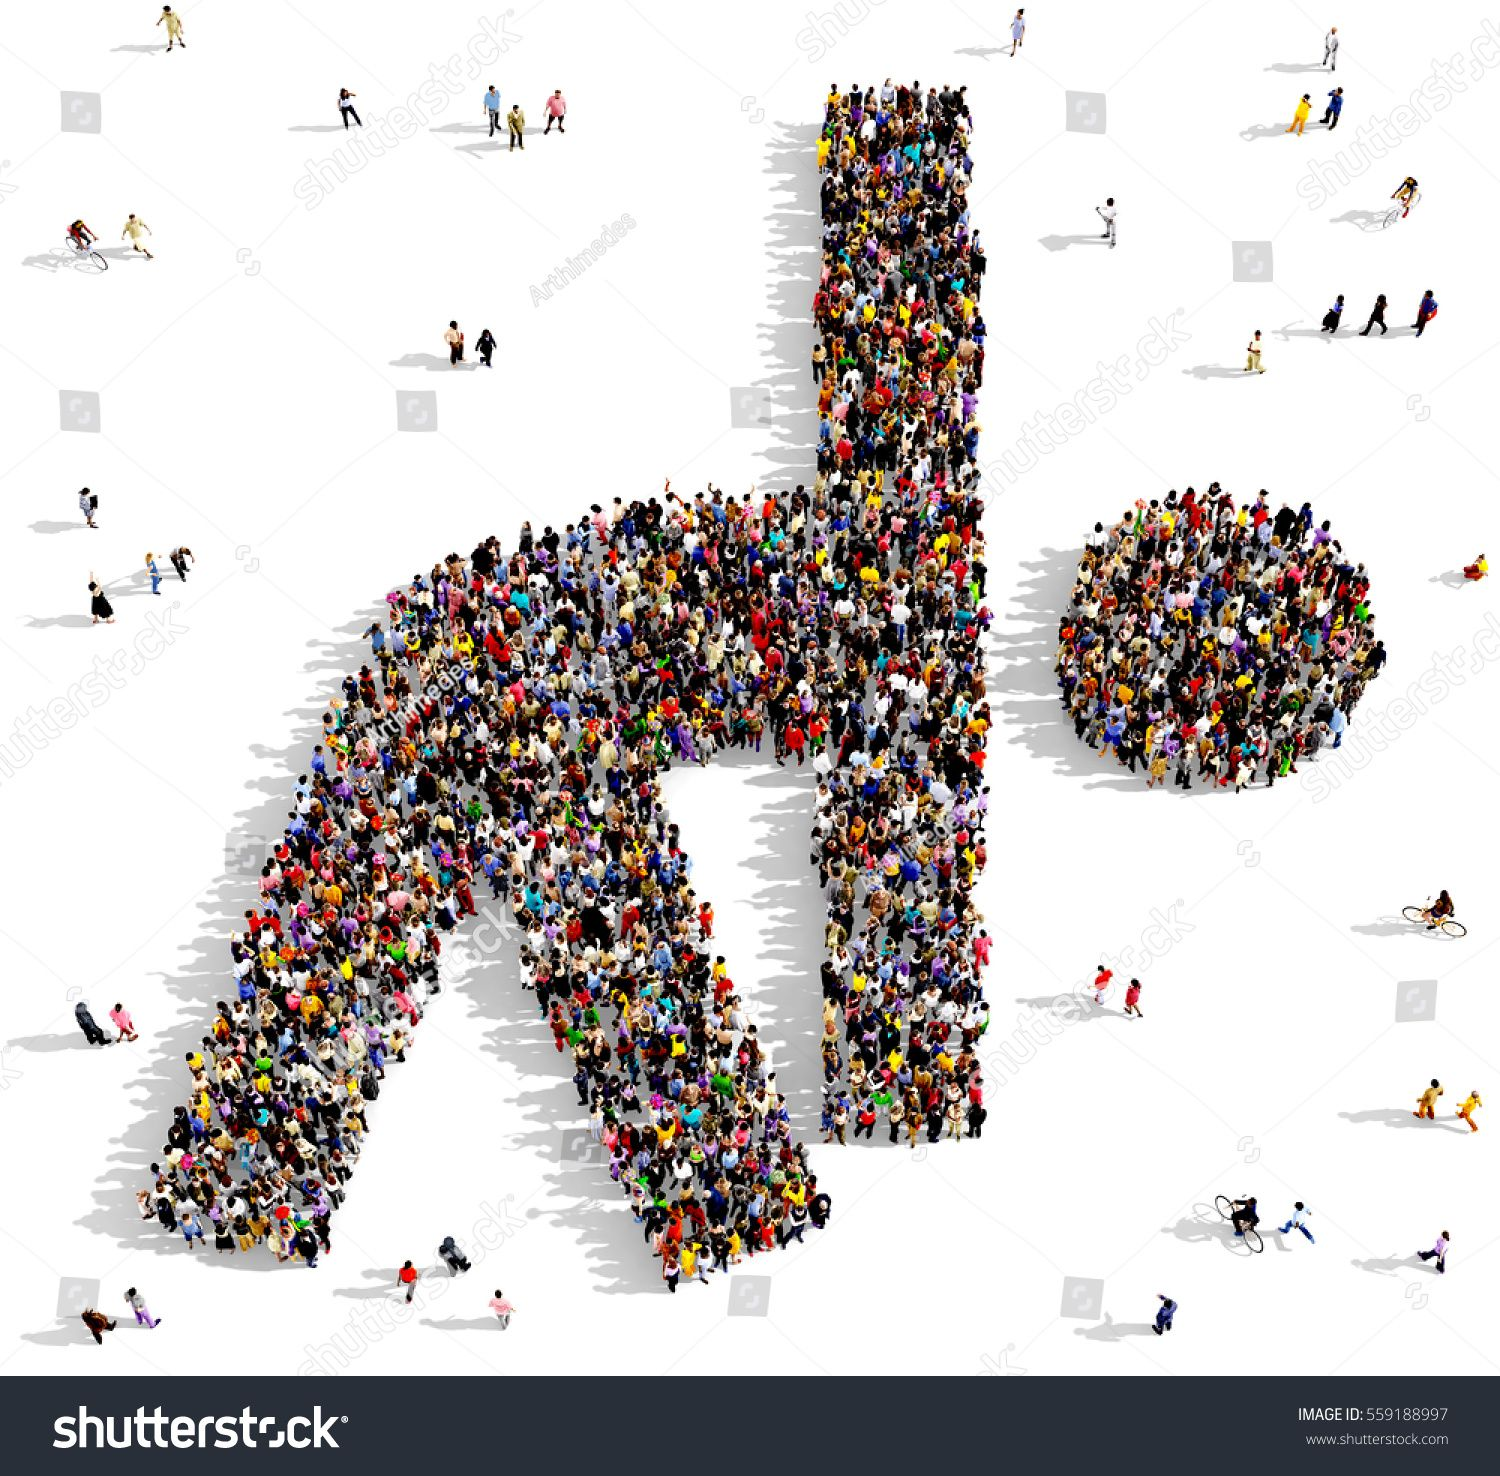 Large and diverse crowd of people seen from above gathered together to form a diagonal composition, 3d illustration\n #Ad , #AFFILIATE, #crowd#people#Large#diverse